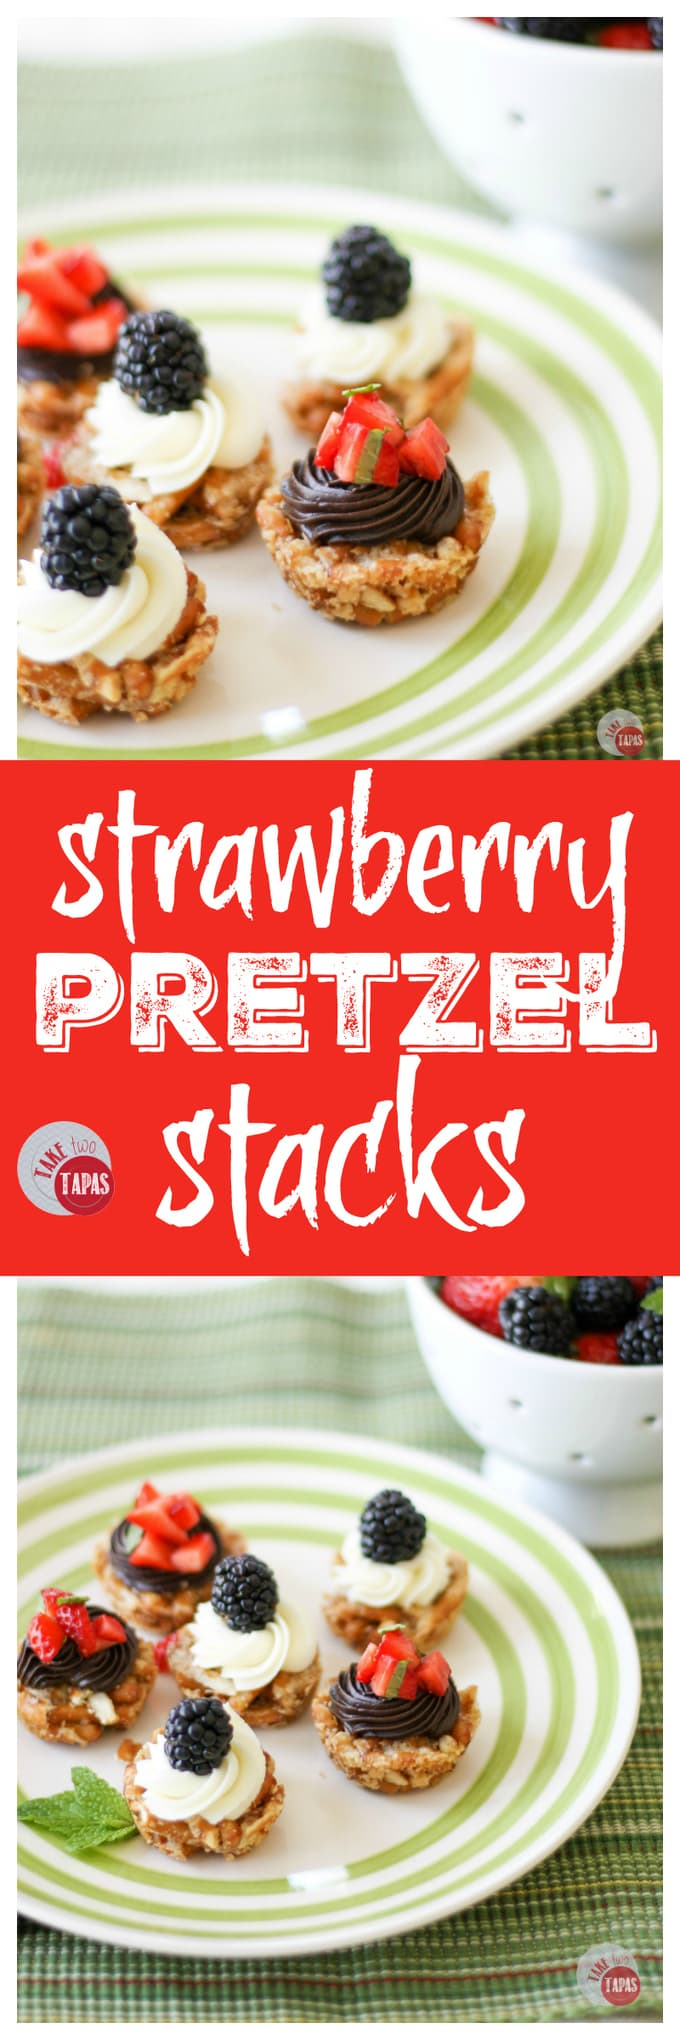 Strawberry Pretzels Stacks with Ganache | Take Two Tapas